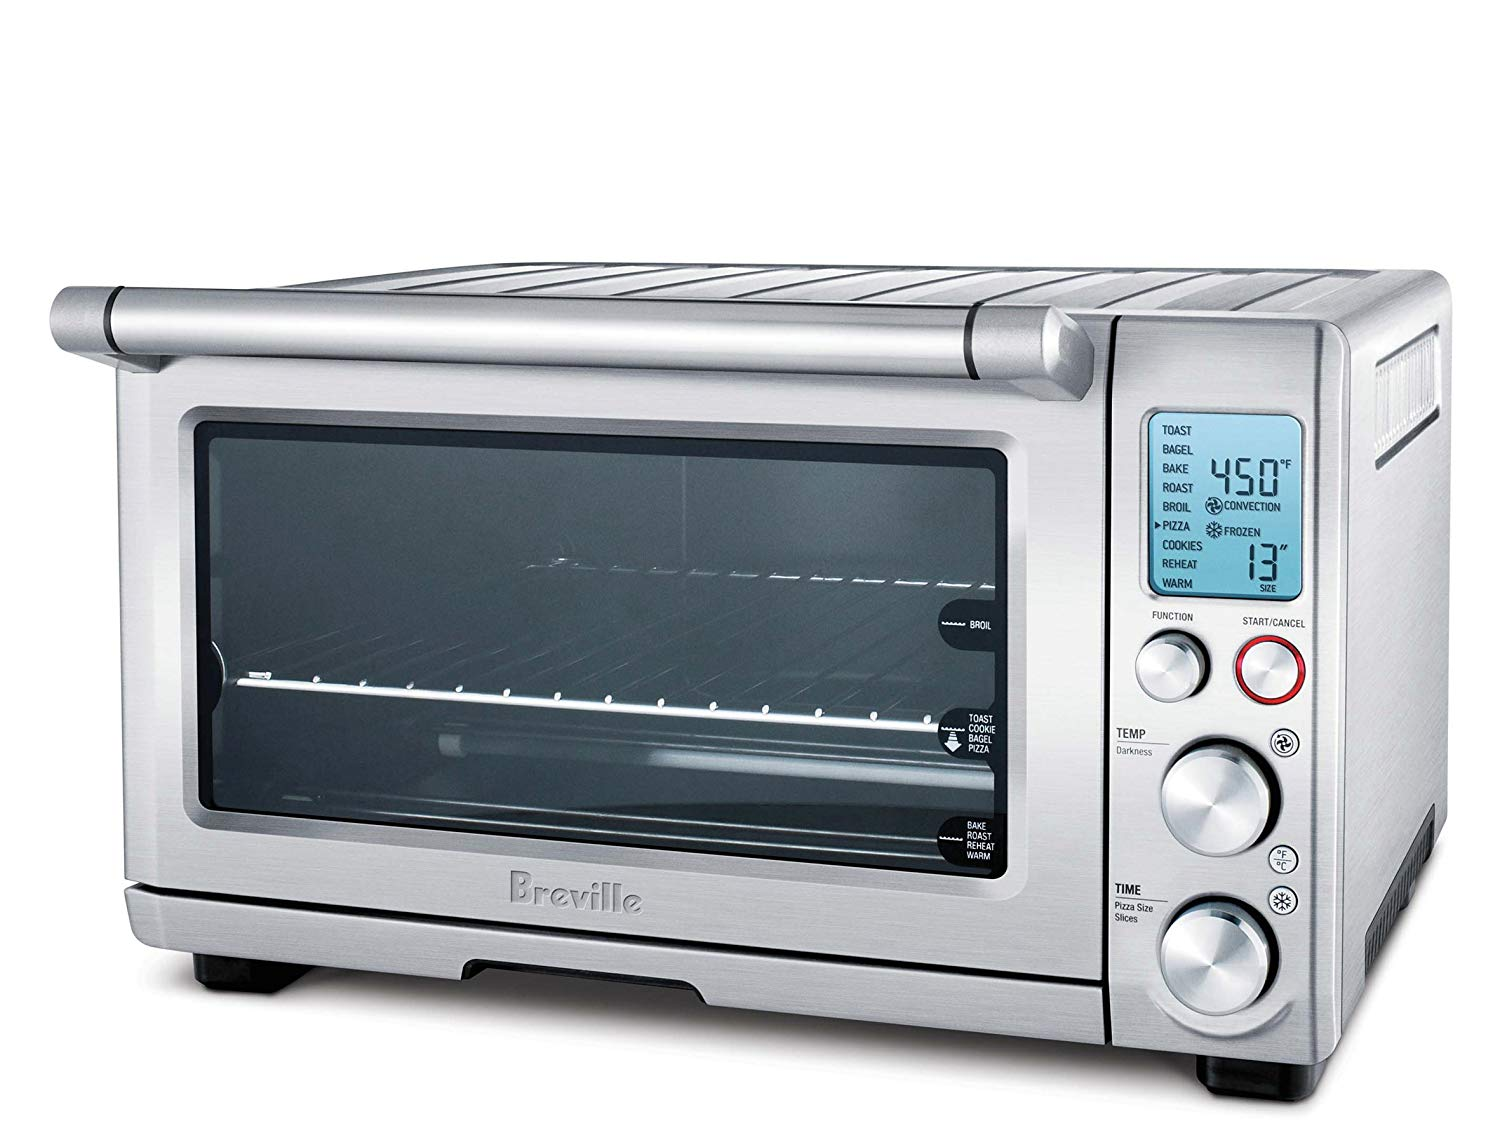 Breville bov800crnxl smart oven 1800-watt convection toaster oven with element iq